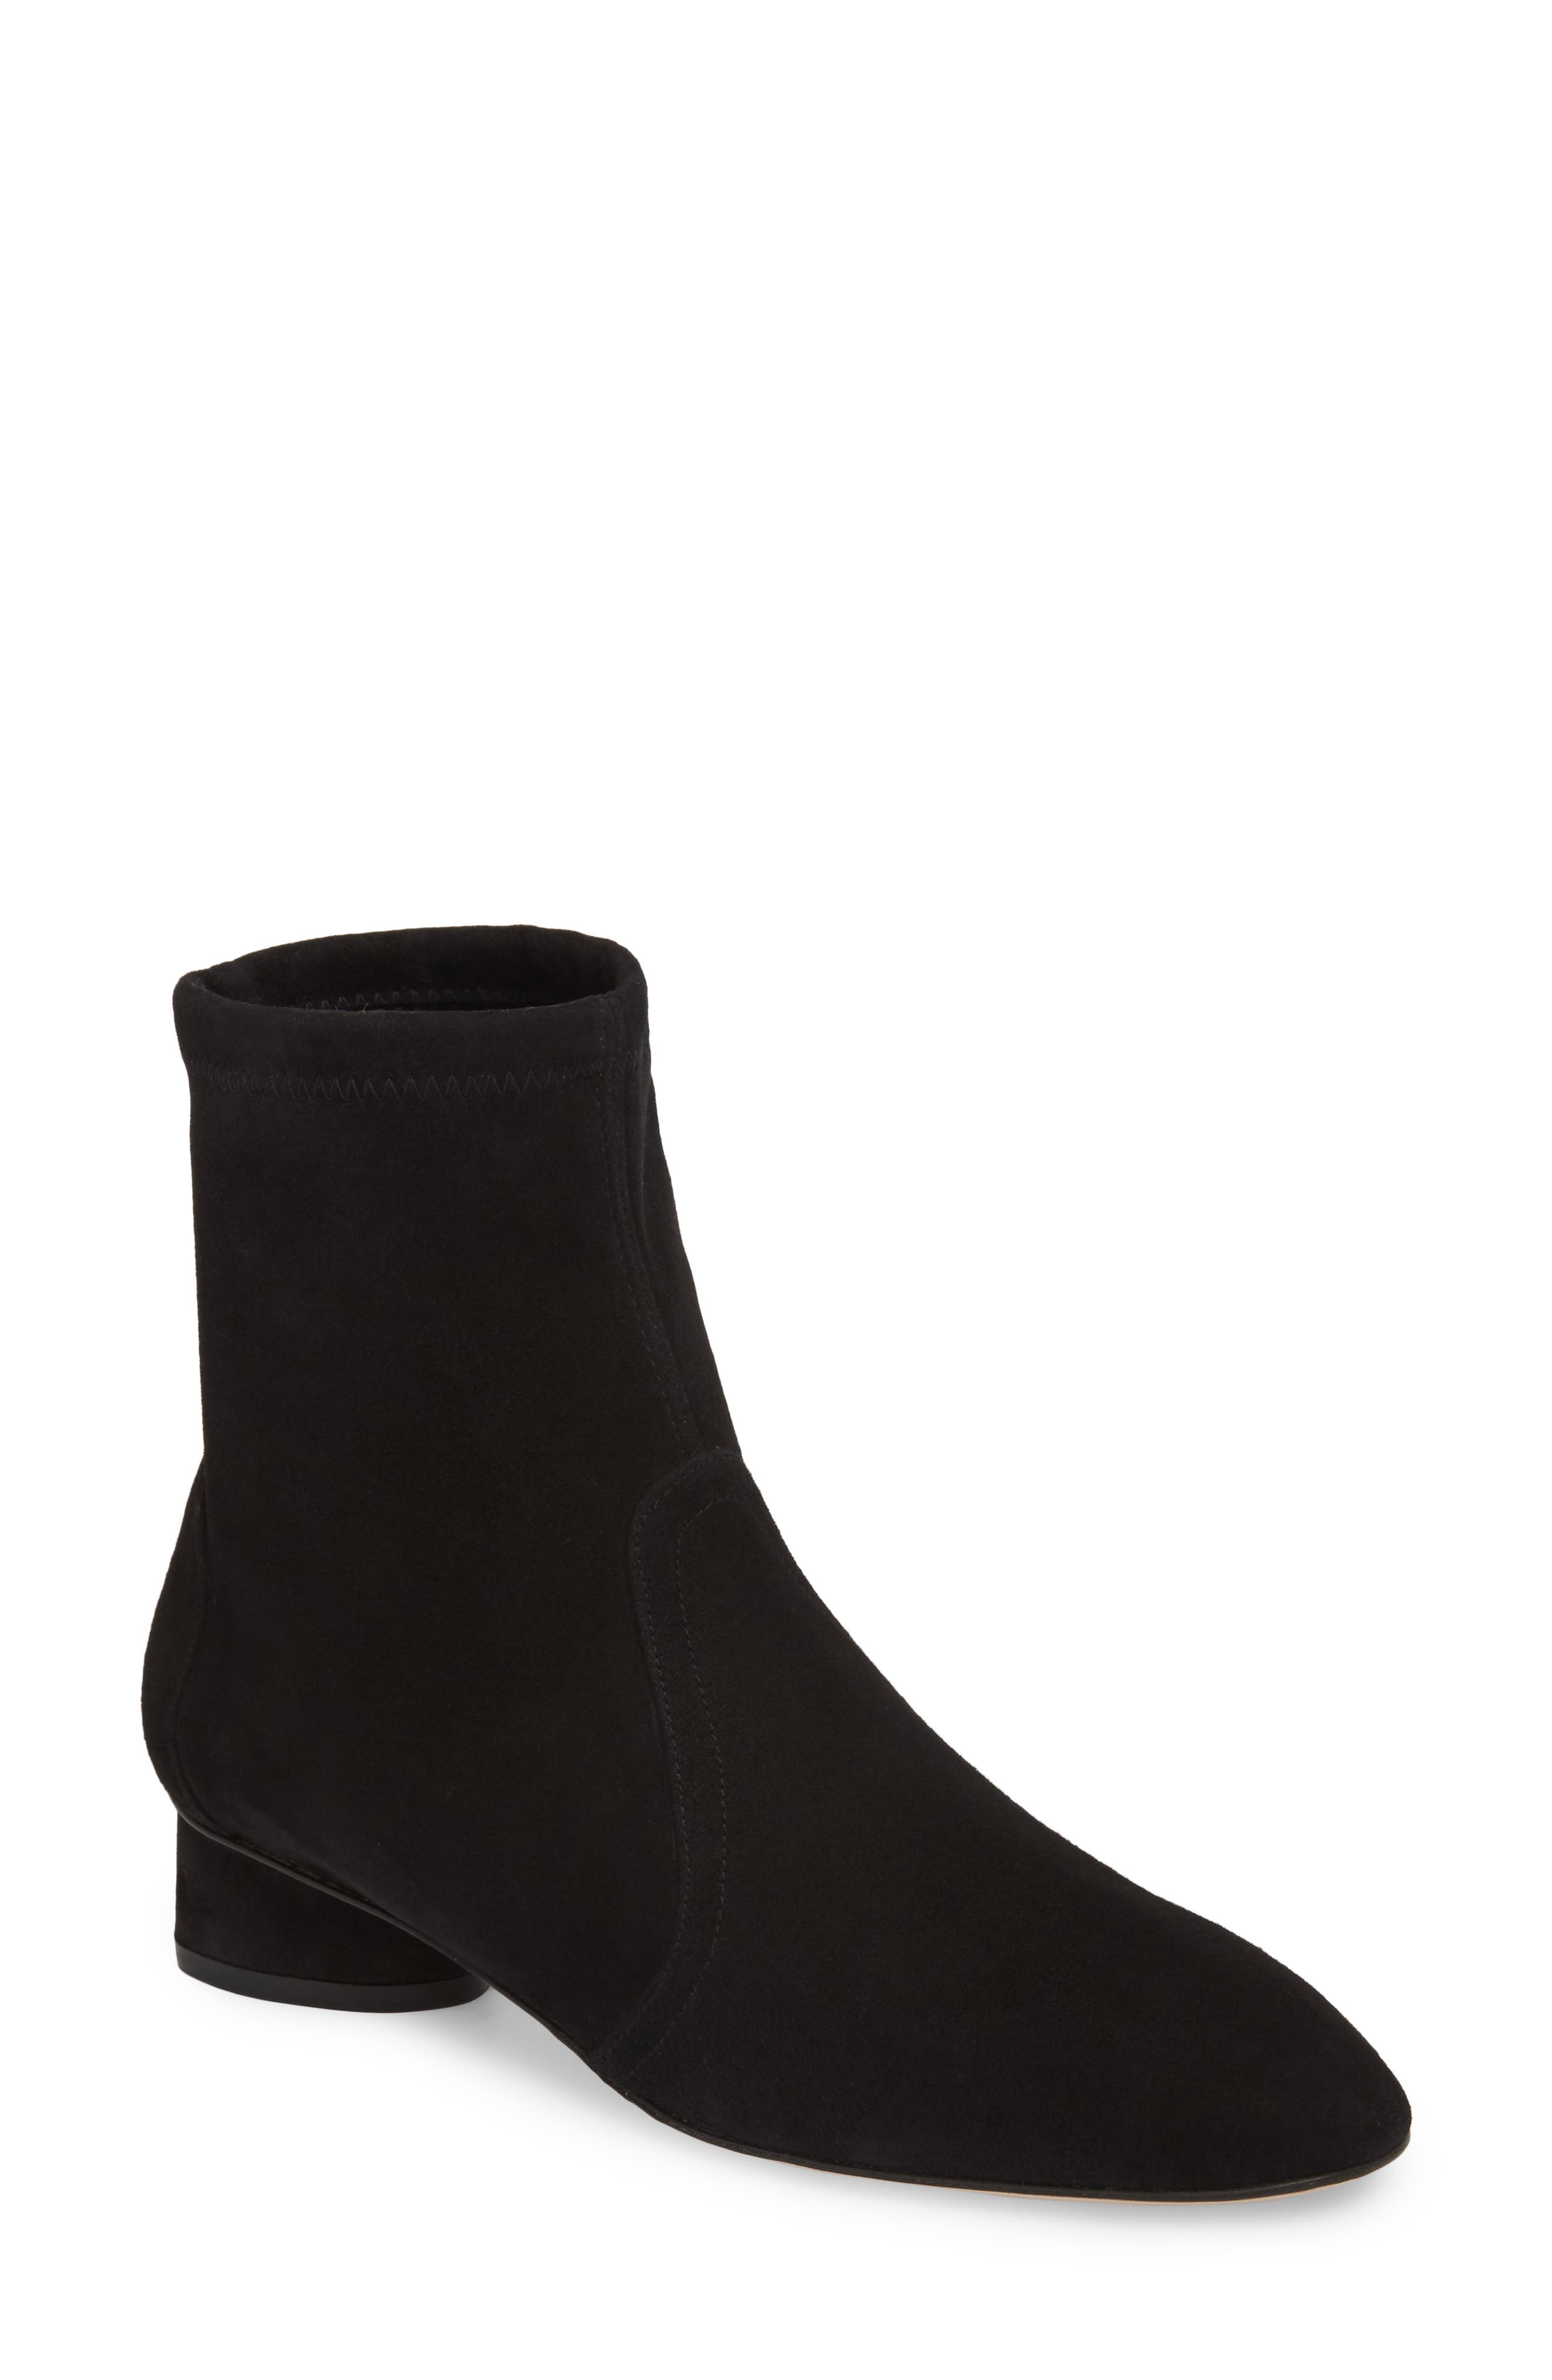 Quebec Bootie,                         Main,                         color, Black Luxe Suede